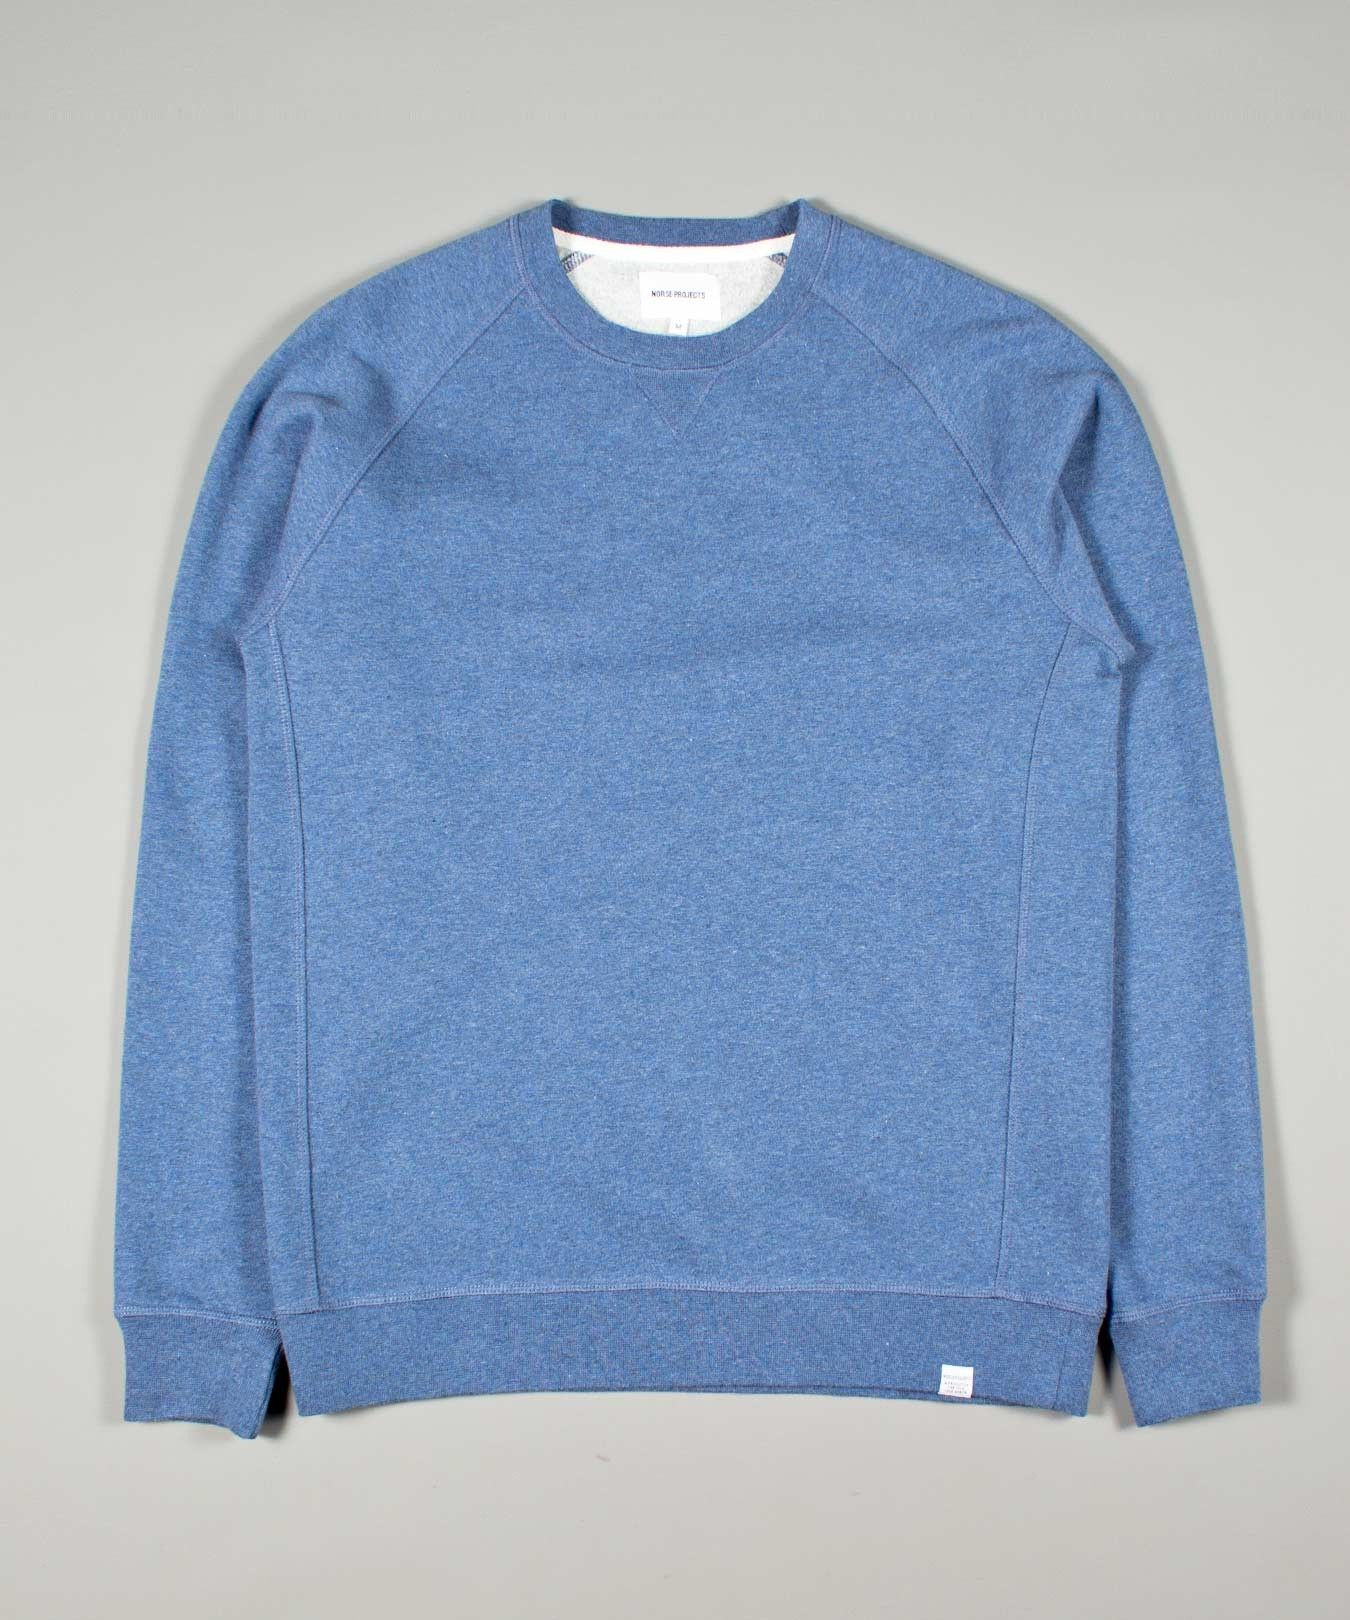 Norse Projects at Weavers Door | Norse Projects | SS15 | Ketel Solid Brushed | Blue Melange | £85.00 & Norse Projects at Weavers Door | Norse Projects | SS15 | Ketel Solid ...